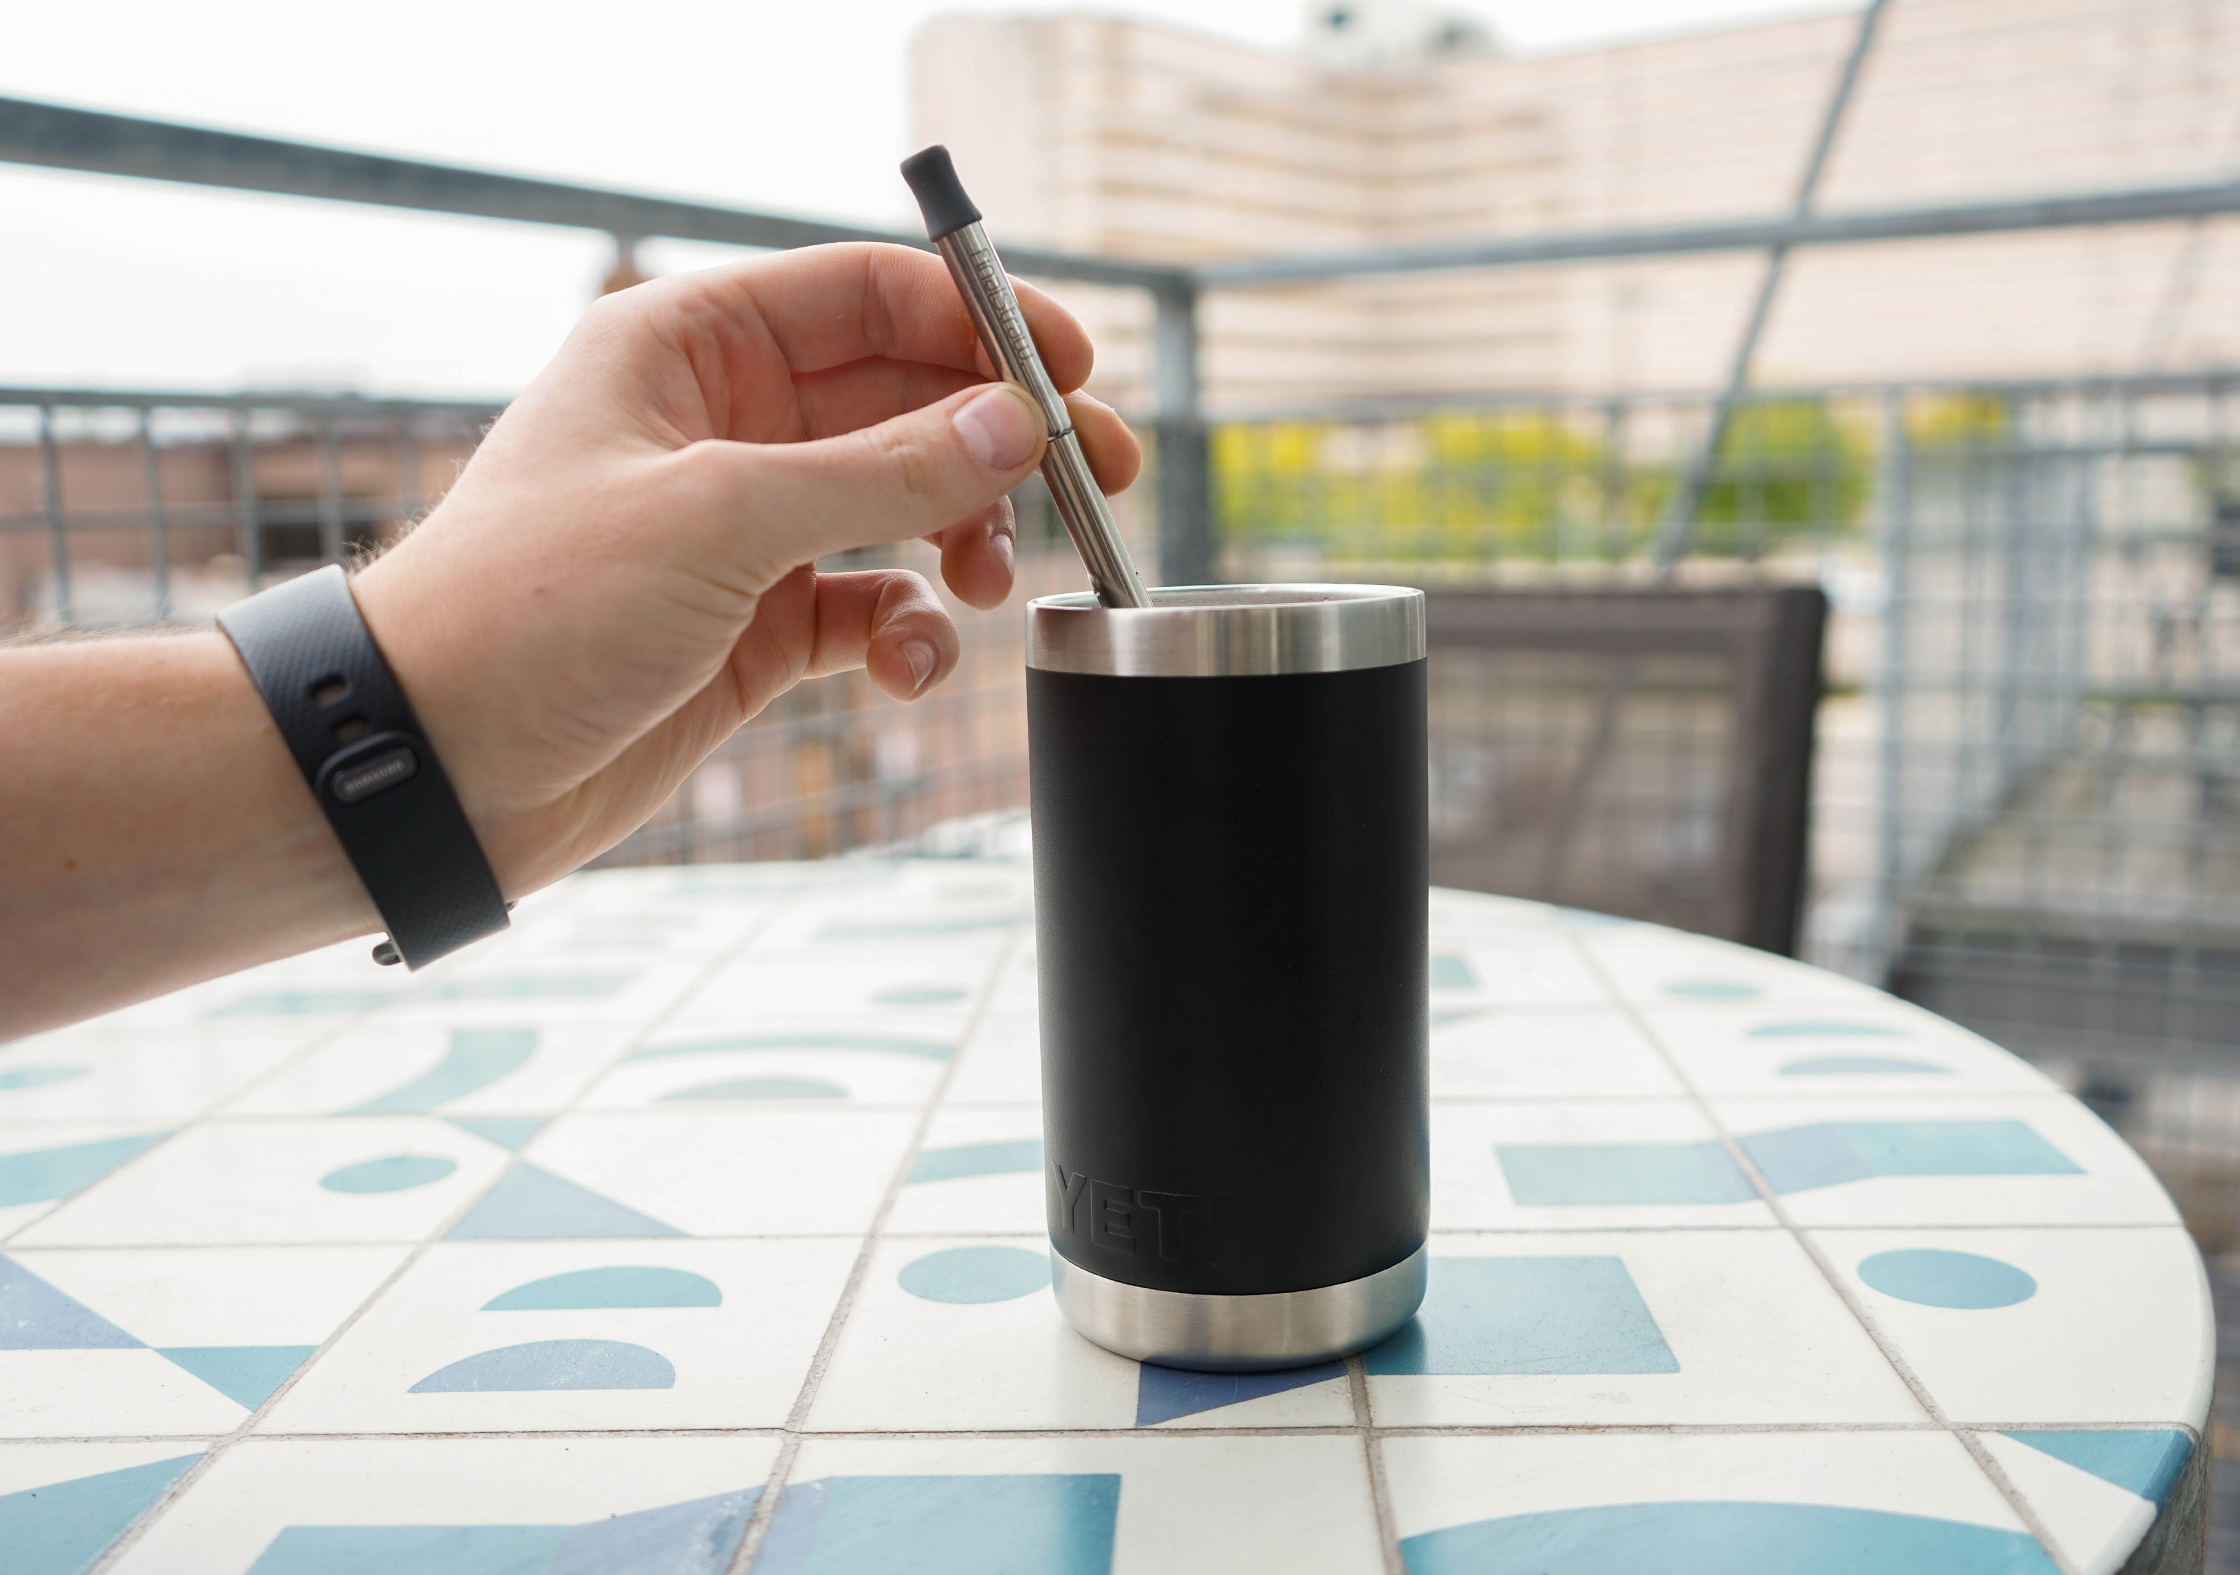 FinalStraw Collapsible Straw 2.0 In Detroit